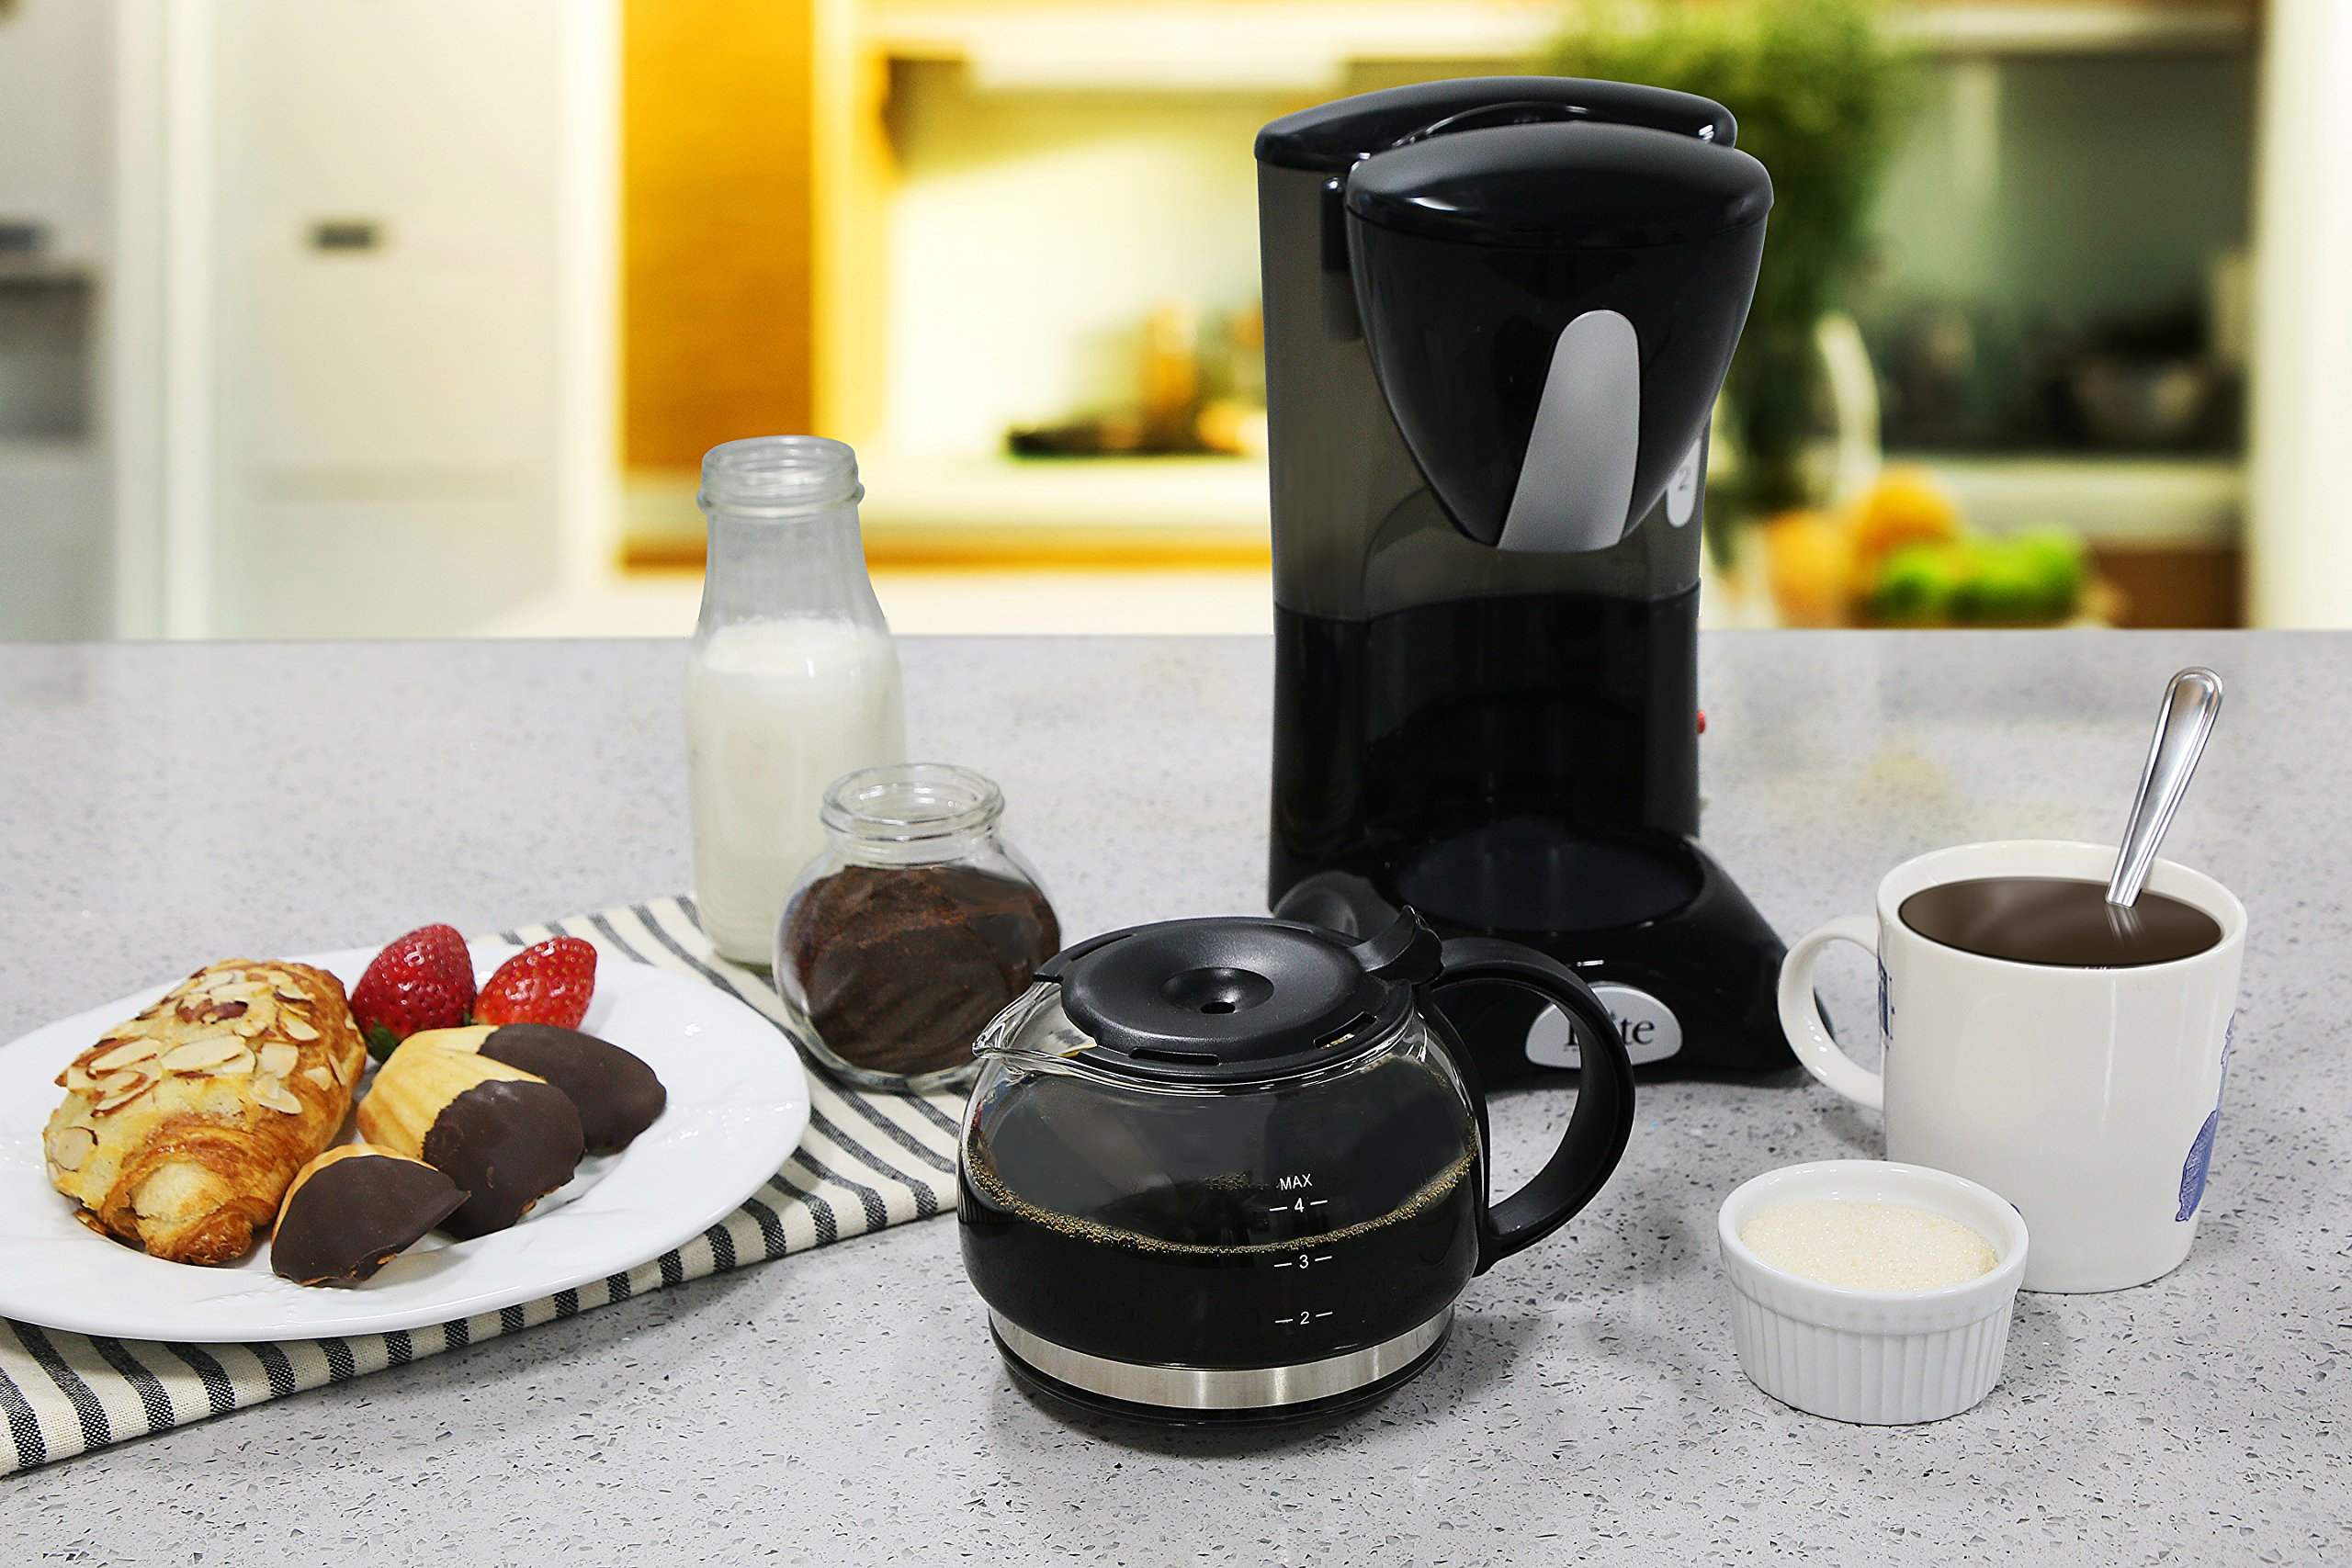 Elite Cuisine EHC-2022 Maxi-Matic 4 Cup Coffee Maker with Pause and Serve, Black by Maxi-Matic (Image #9)